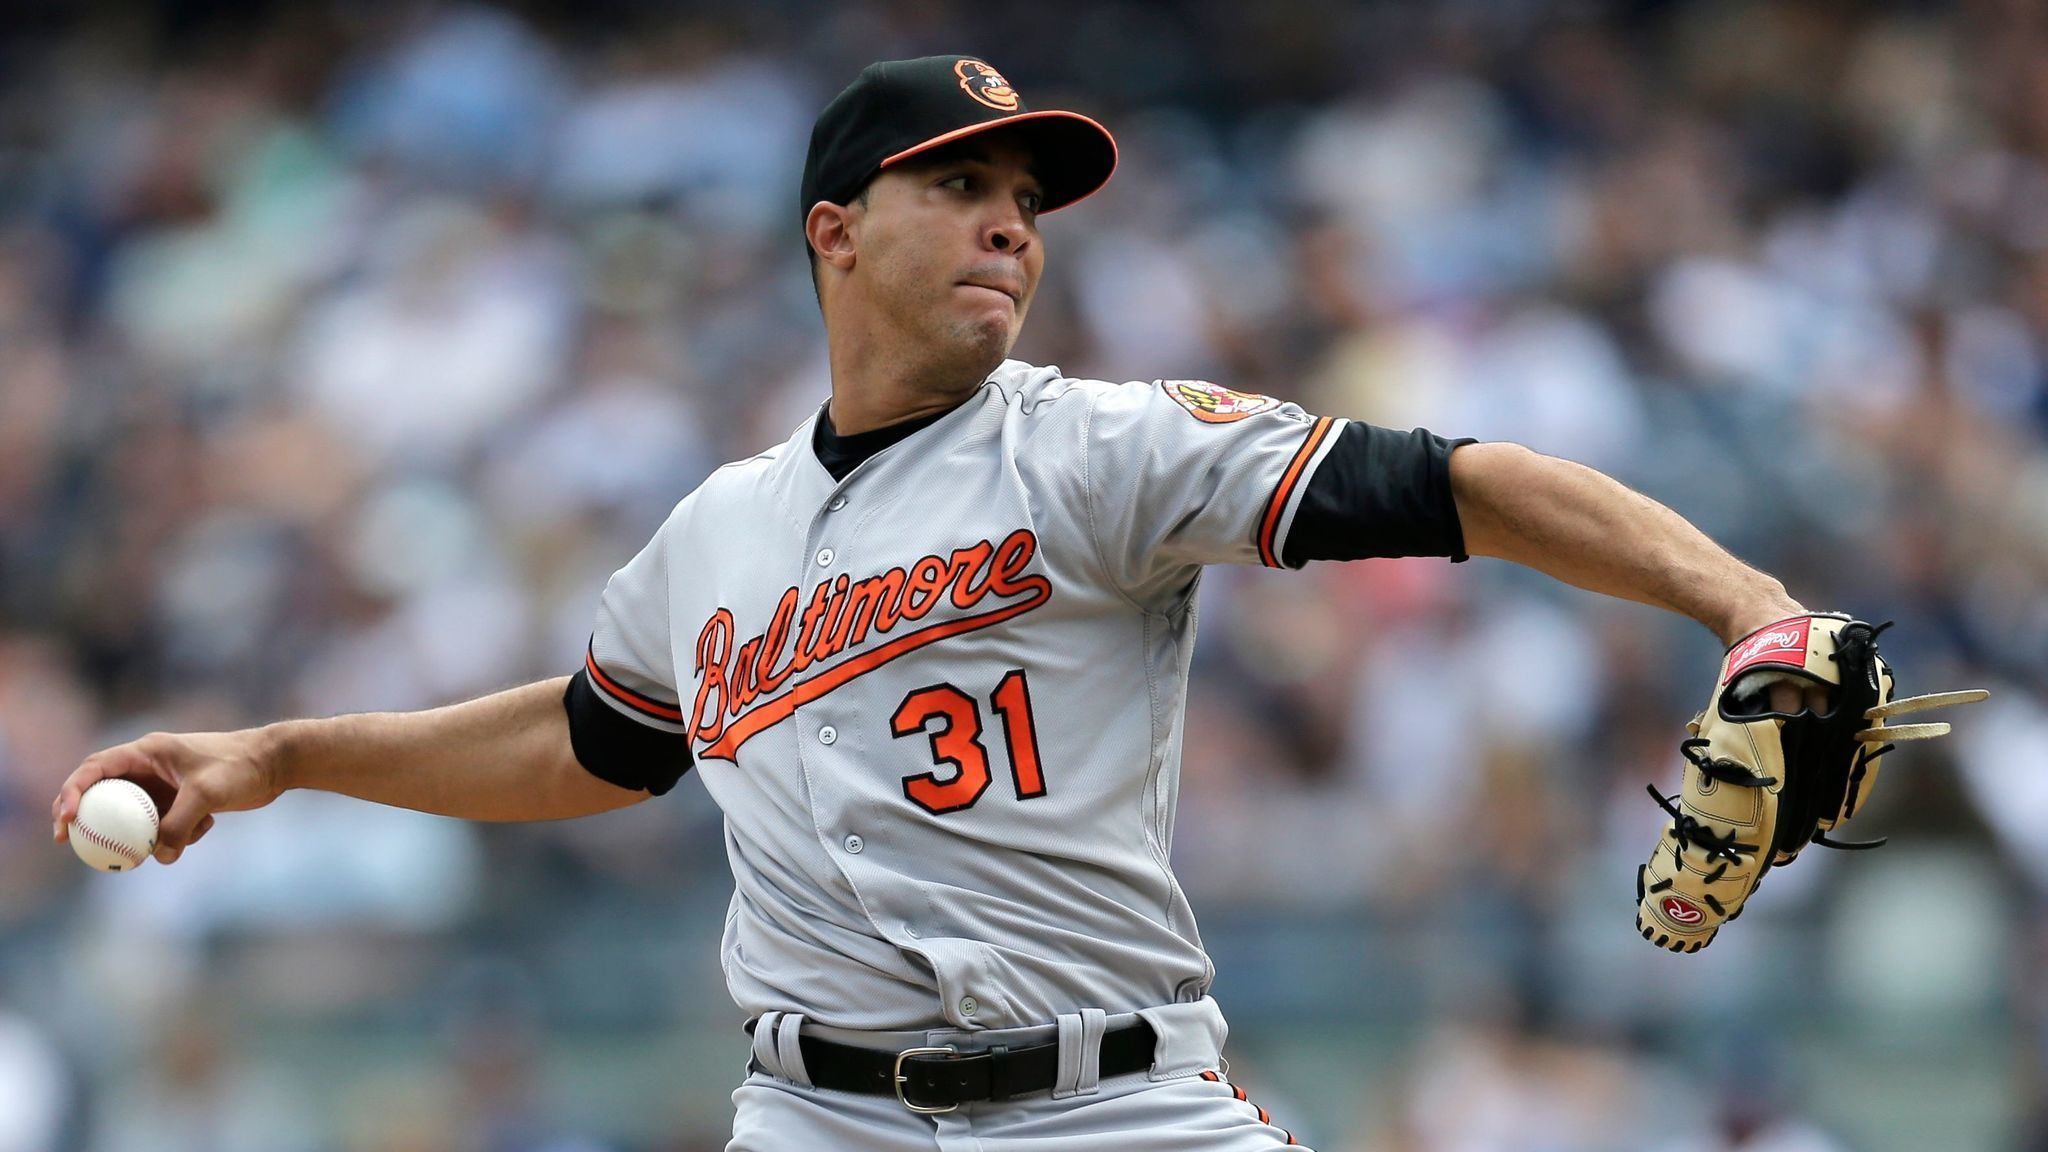 f9dc97109 Jiménez strikes out 10 as Orioles avoid sweep in the Bronx with 6-4 win  over Yankees